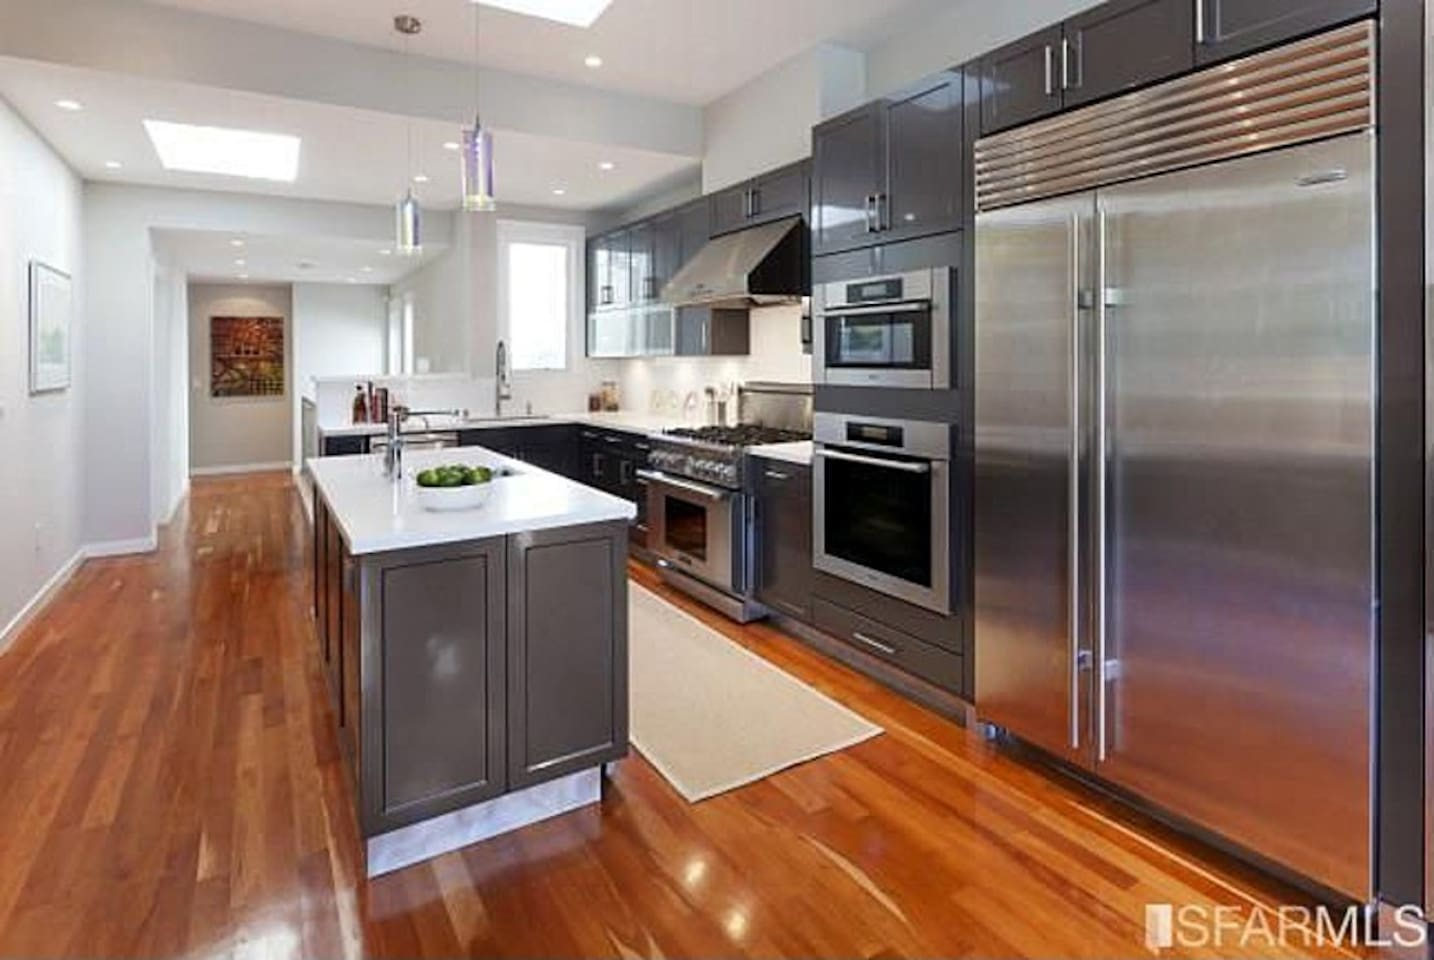 Gourmet chef's kitchen with top of the line appliances, six-burner stove, wine and beverage refrigerators, and all kinds of cooking gadgets (slow cooker, KitchenAid stand mixer, juicer, Vitamix blender, sous vide, rice cooker, etc.)